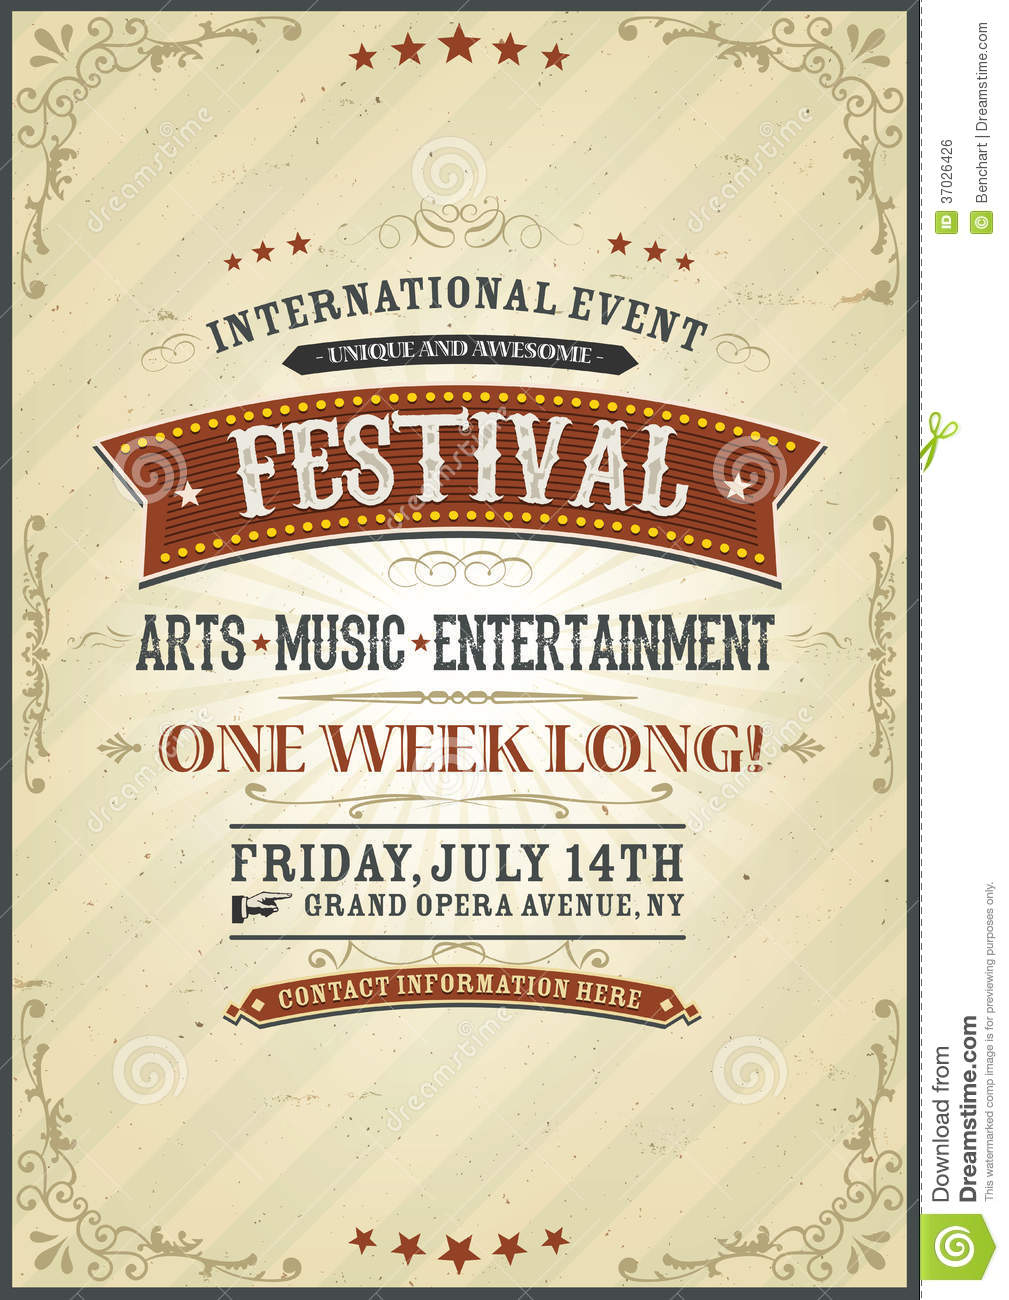 Vintage Festival Poster Royalty Free Stock Image  Image